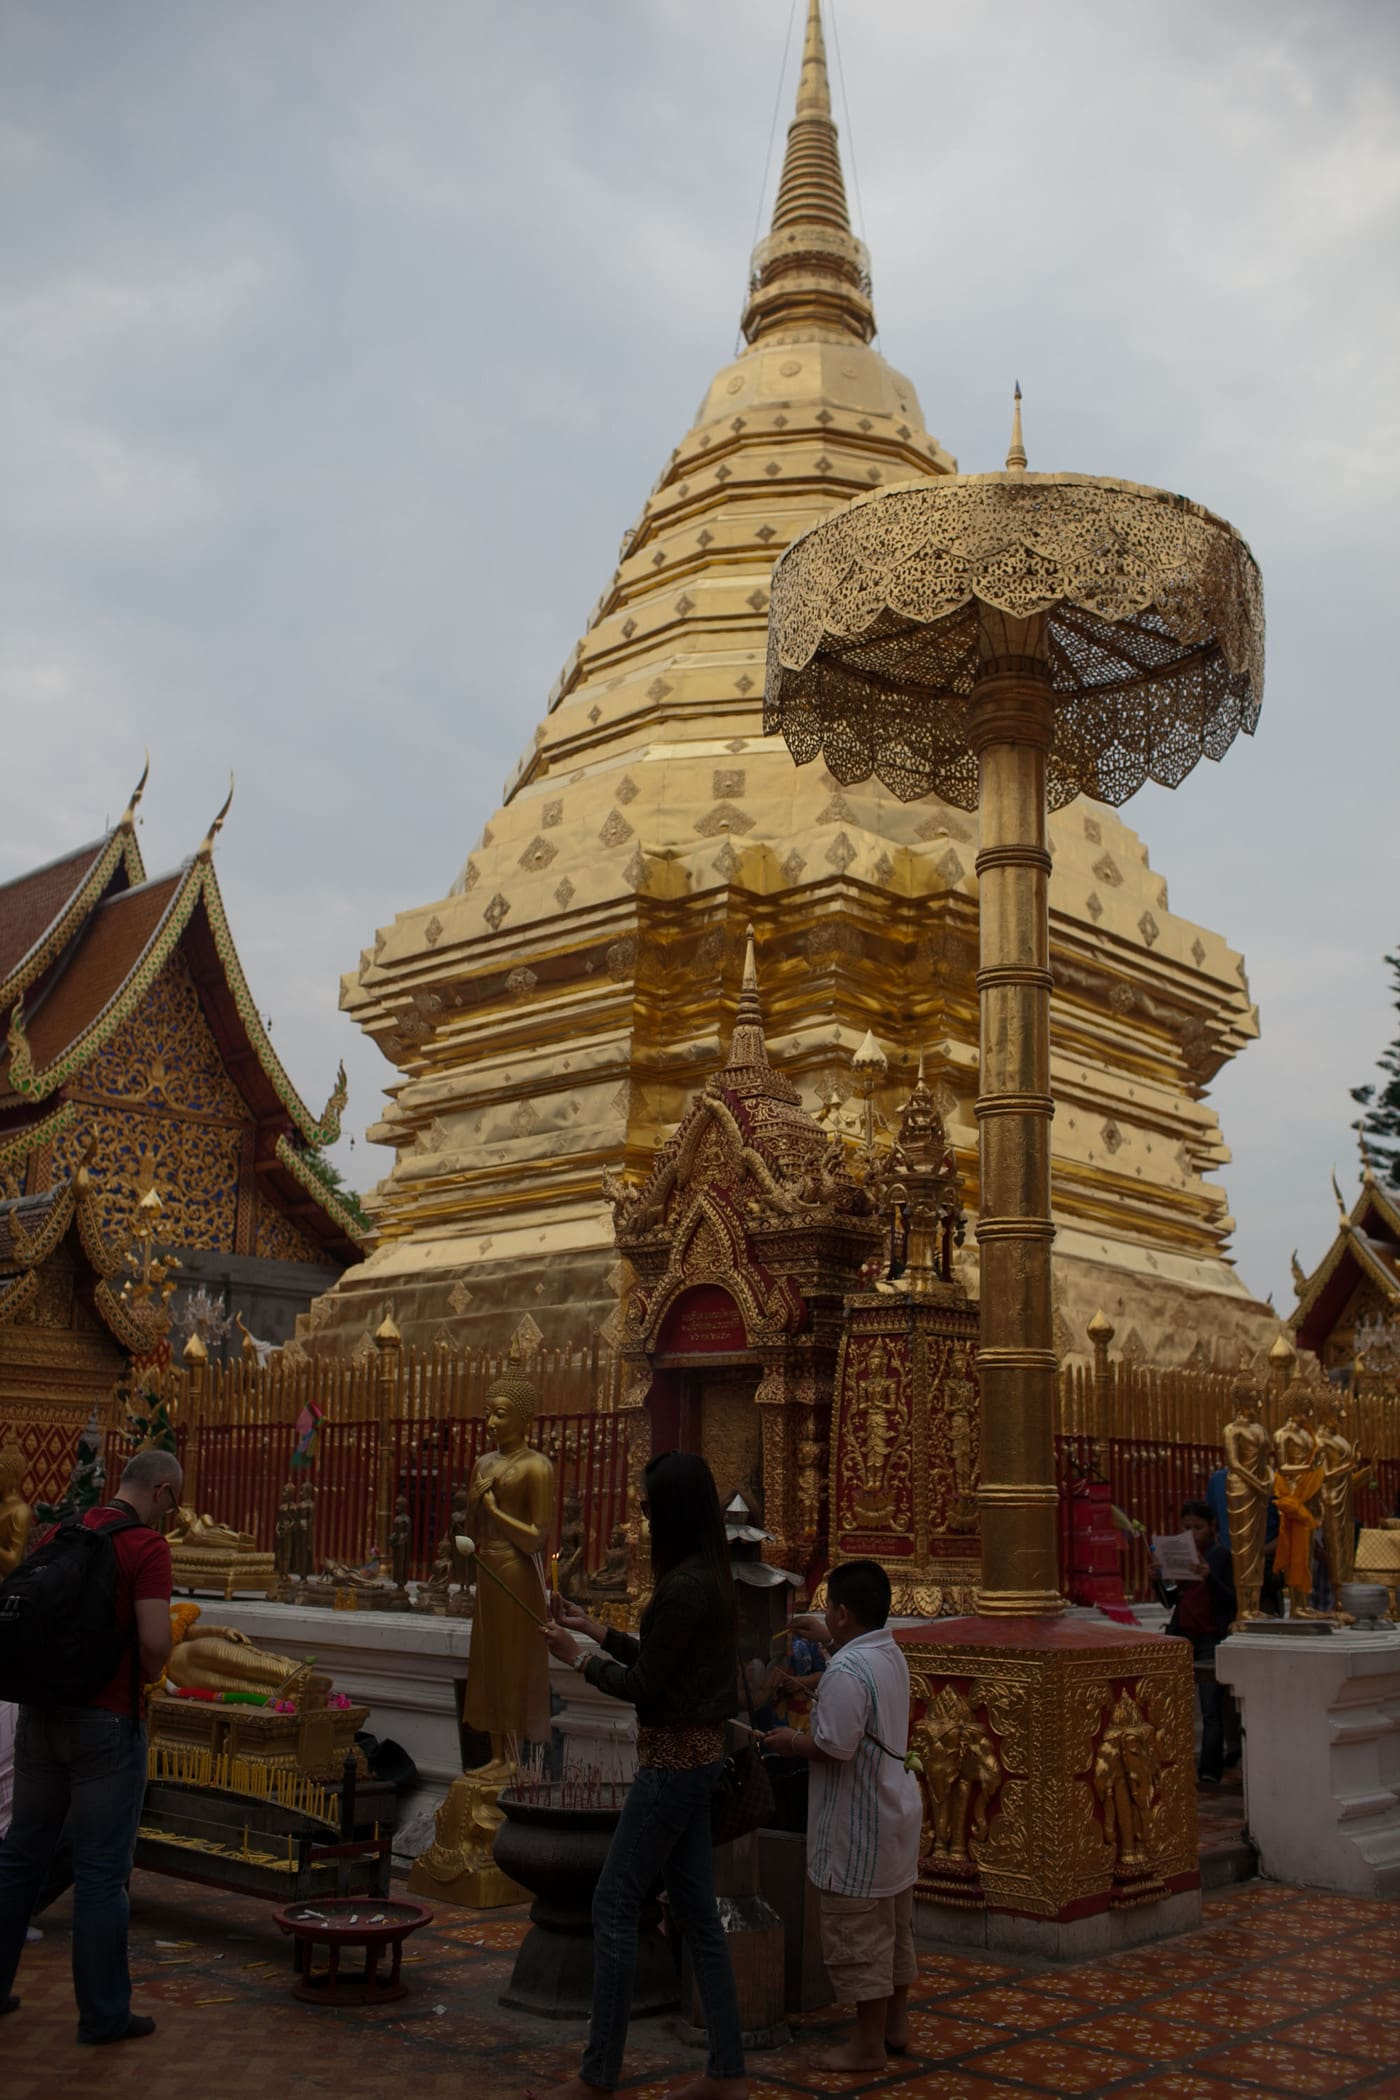 Doi Suthep, a temple on top of a hill, in Chiang Mai, Thailand